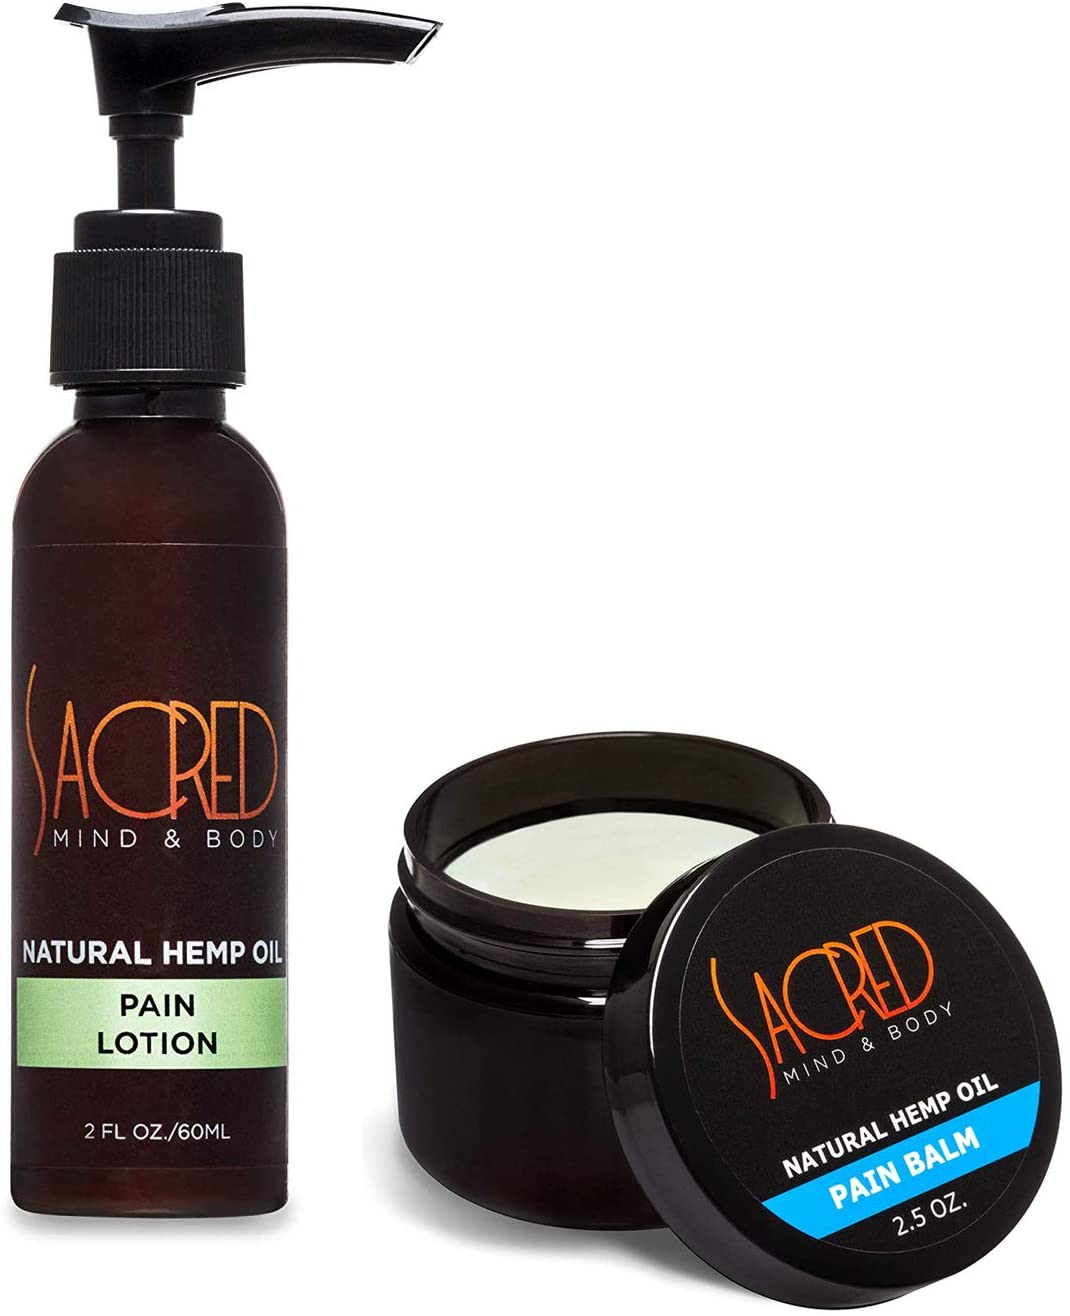 Hemp Sacred - 2 Ounce Lotion and 2.5 Ounce Balm for Pain, Joint, Muscle and Arthritis Relief